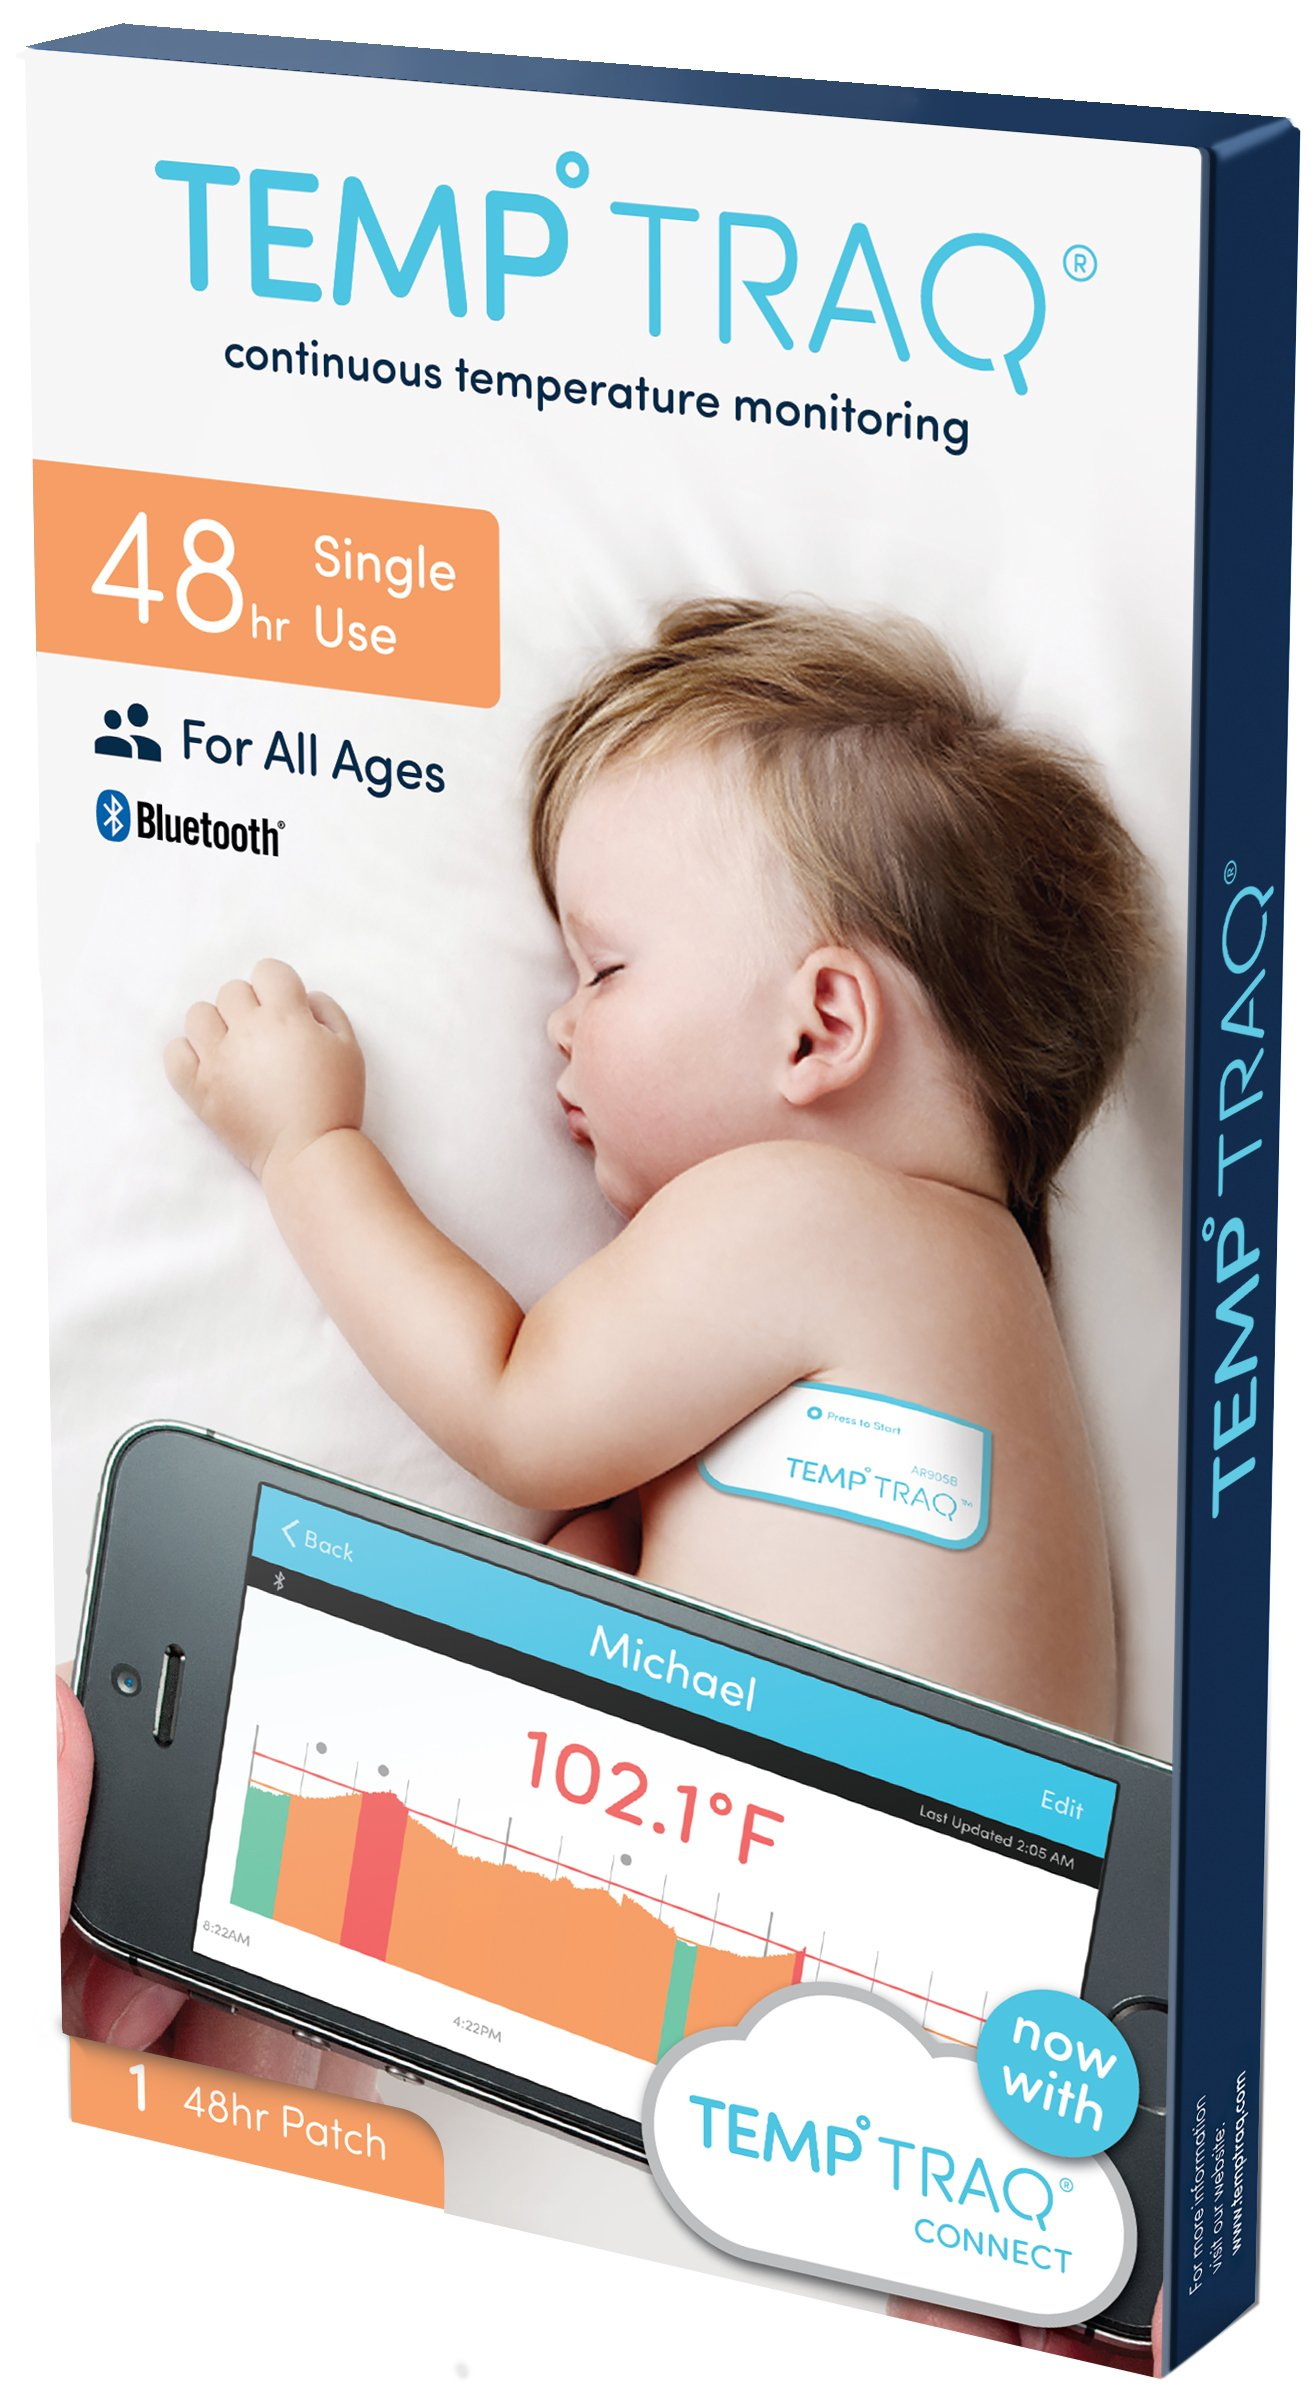 Make Your Baby Smarter In 1 Hour A Week photo